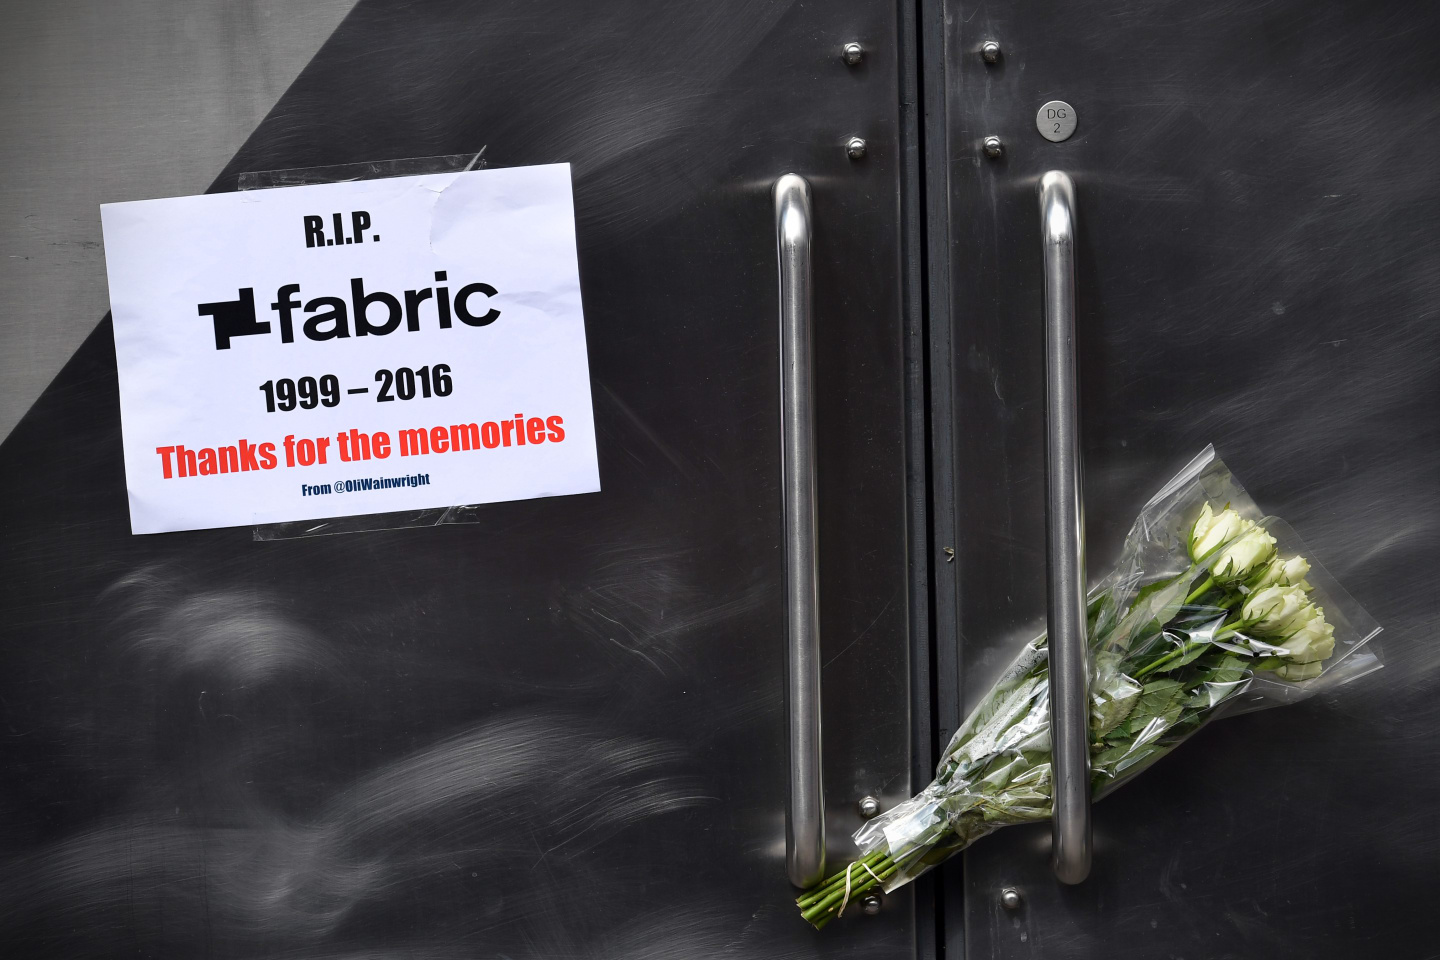 Why Closing Nightclubs Like Fabric Does Not Save Lives